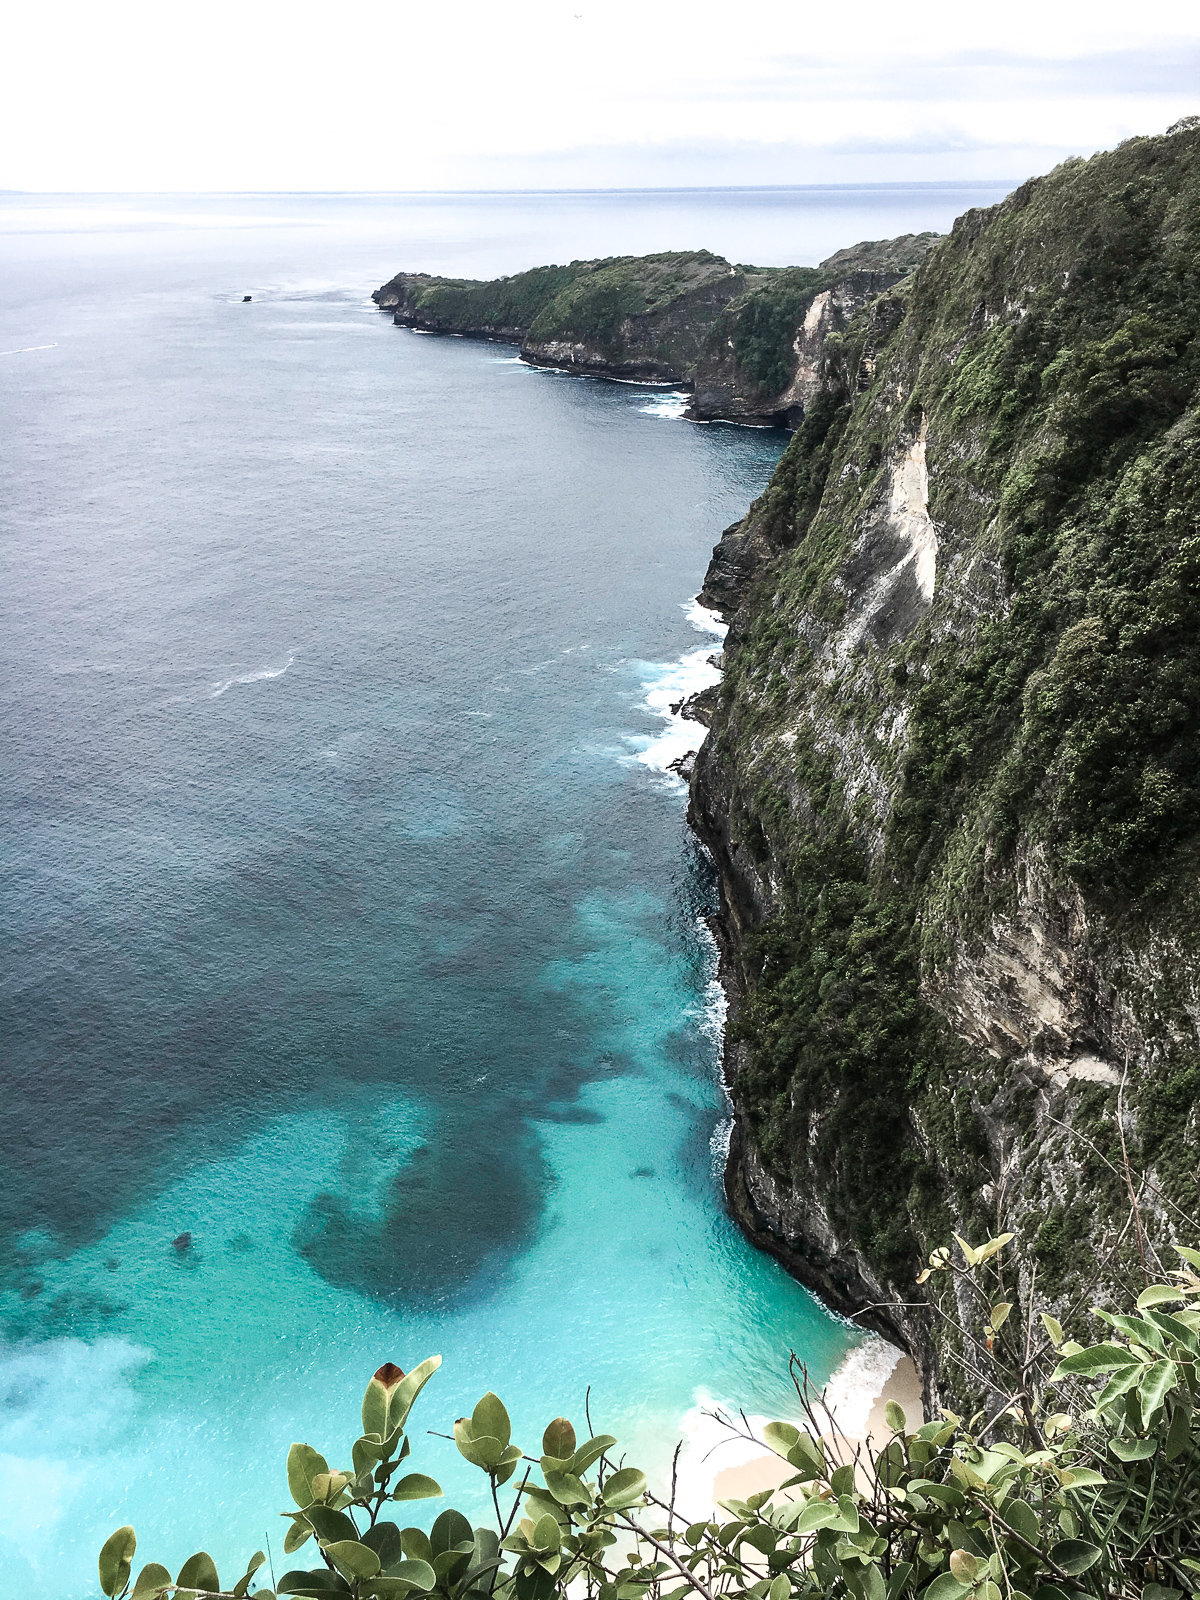 Ein Tag auf Nusa Penida - unvergessliche Erlebnisse, atemberaubende Must Sees und die schönsten Fotolocations - Bali Reise - Insel neben Bali - Bali Tagesausflug - Fashionladyloves by Tamara Wagner - Travel Blogger - Reise Blog